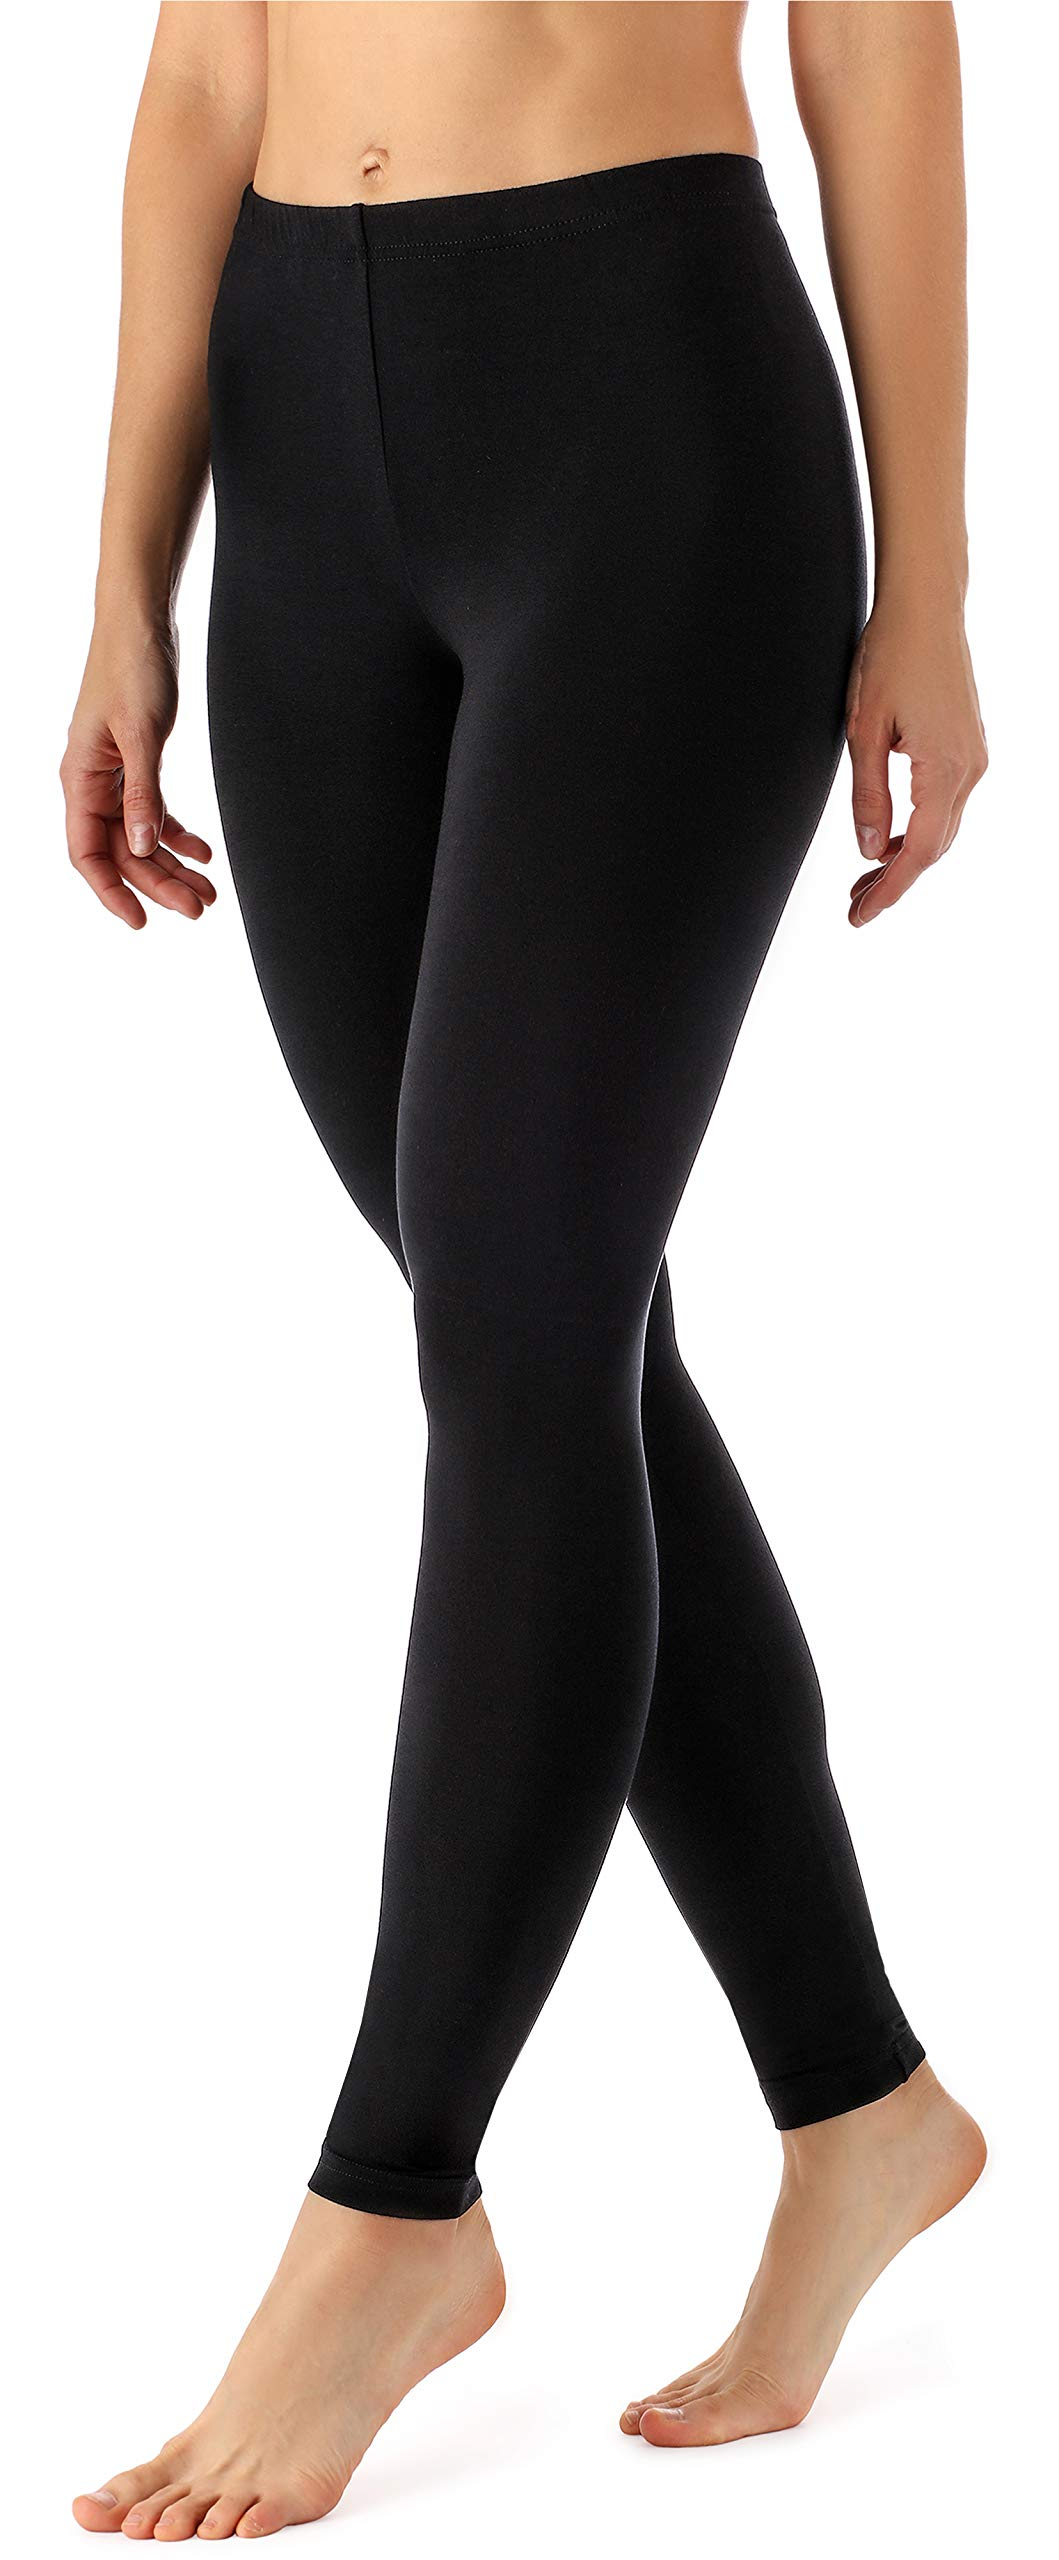 Merry Style Legging Long Tenue Sport Femme MS10-143 product image 630735900b9